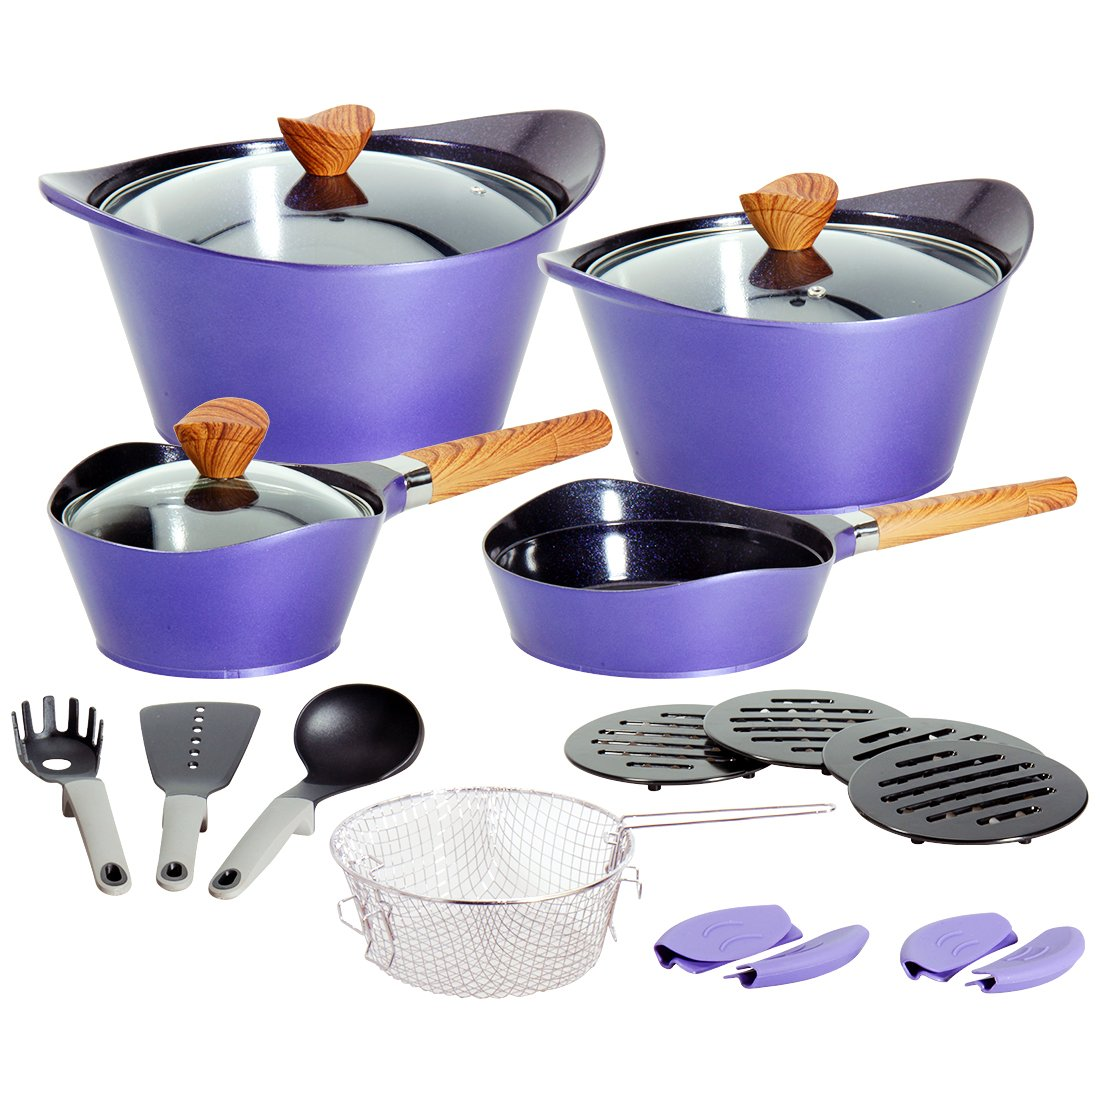 Ceramic Cookware Set Dishwasher Safe Nonstick Aluminum Induction Kitchen Cookware Set with Cooking Utensil Pack- 19 - Purple